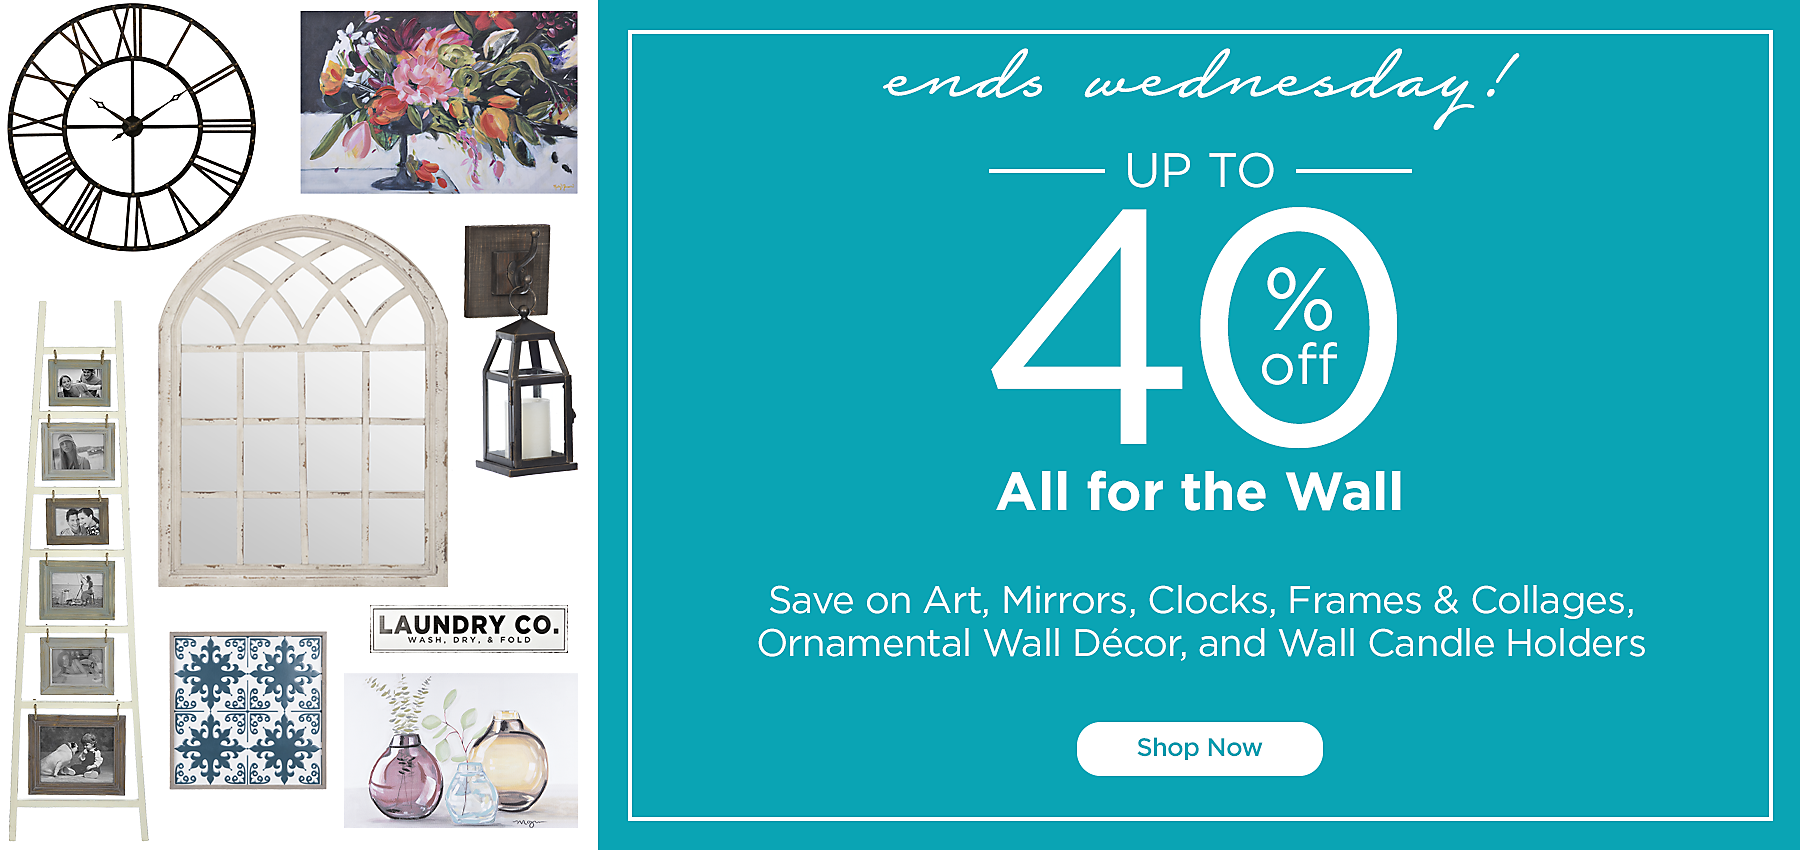 Two Days Only - Up to 40% Off All For The Wall - Includes Outdoor & Holiday - Shop Now